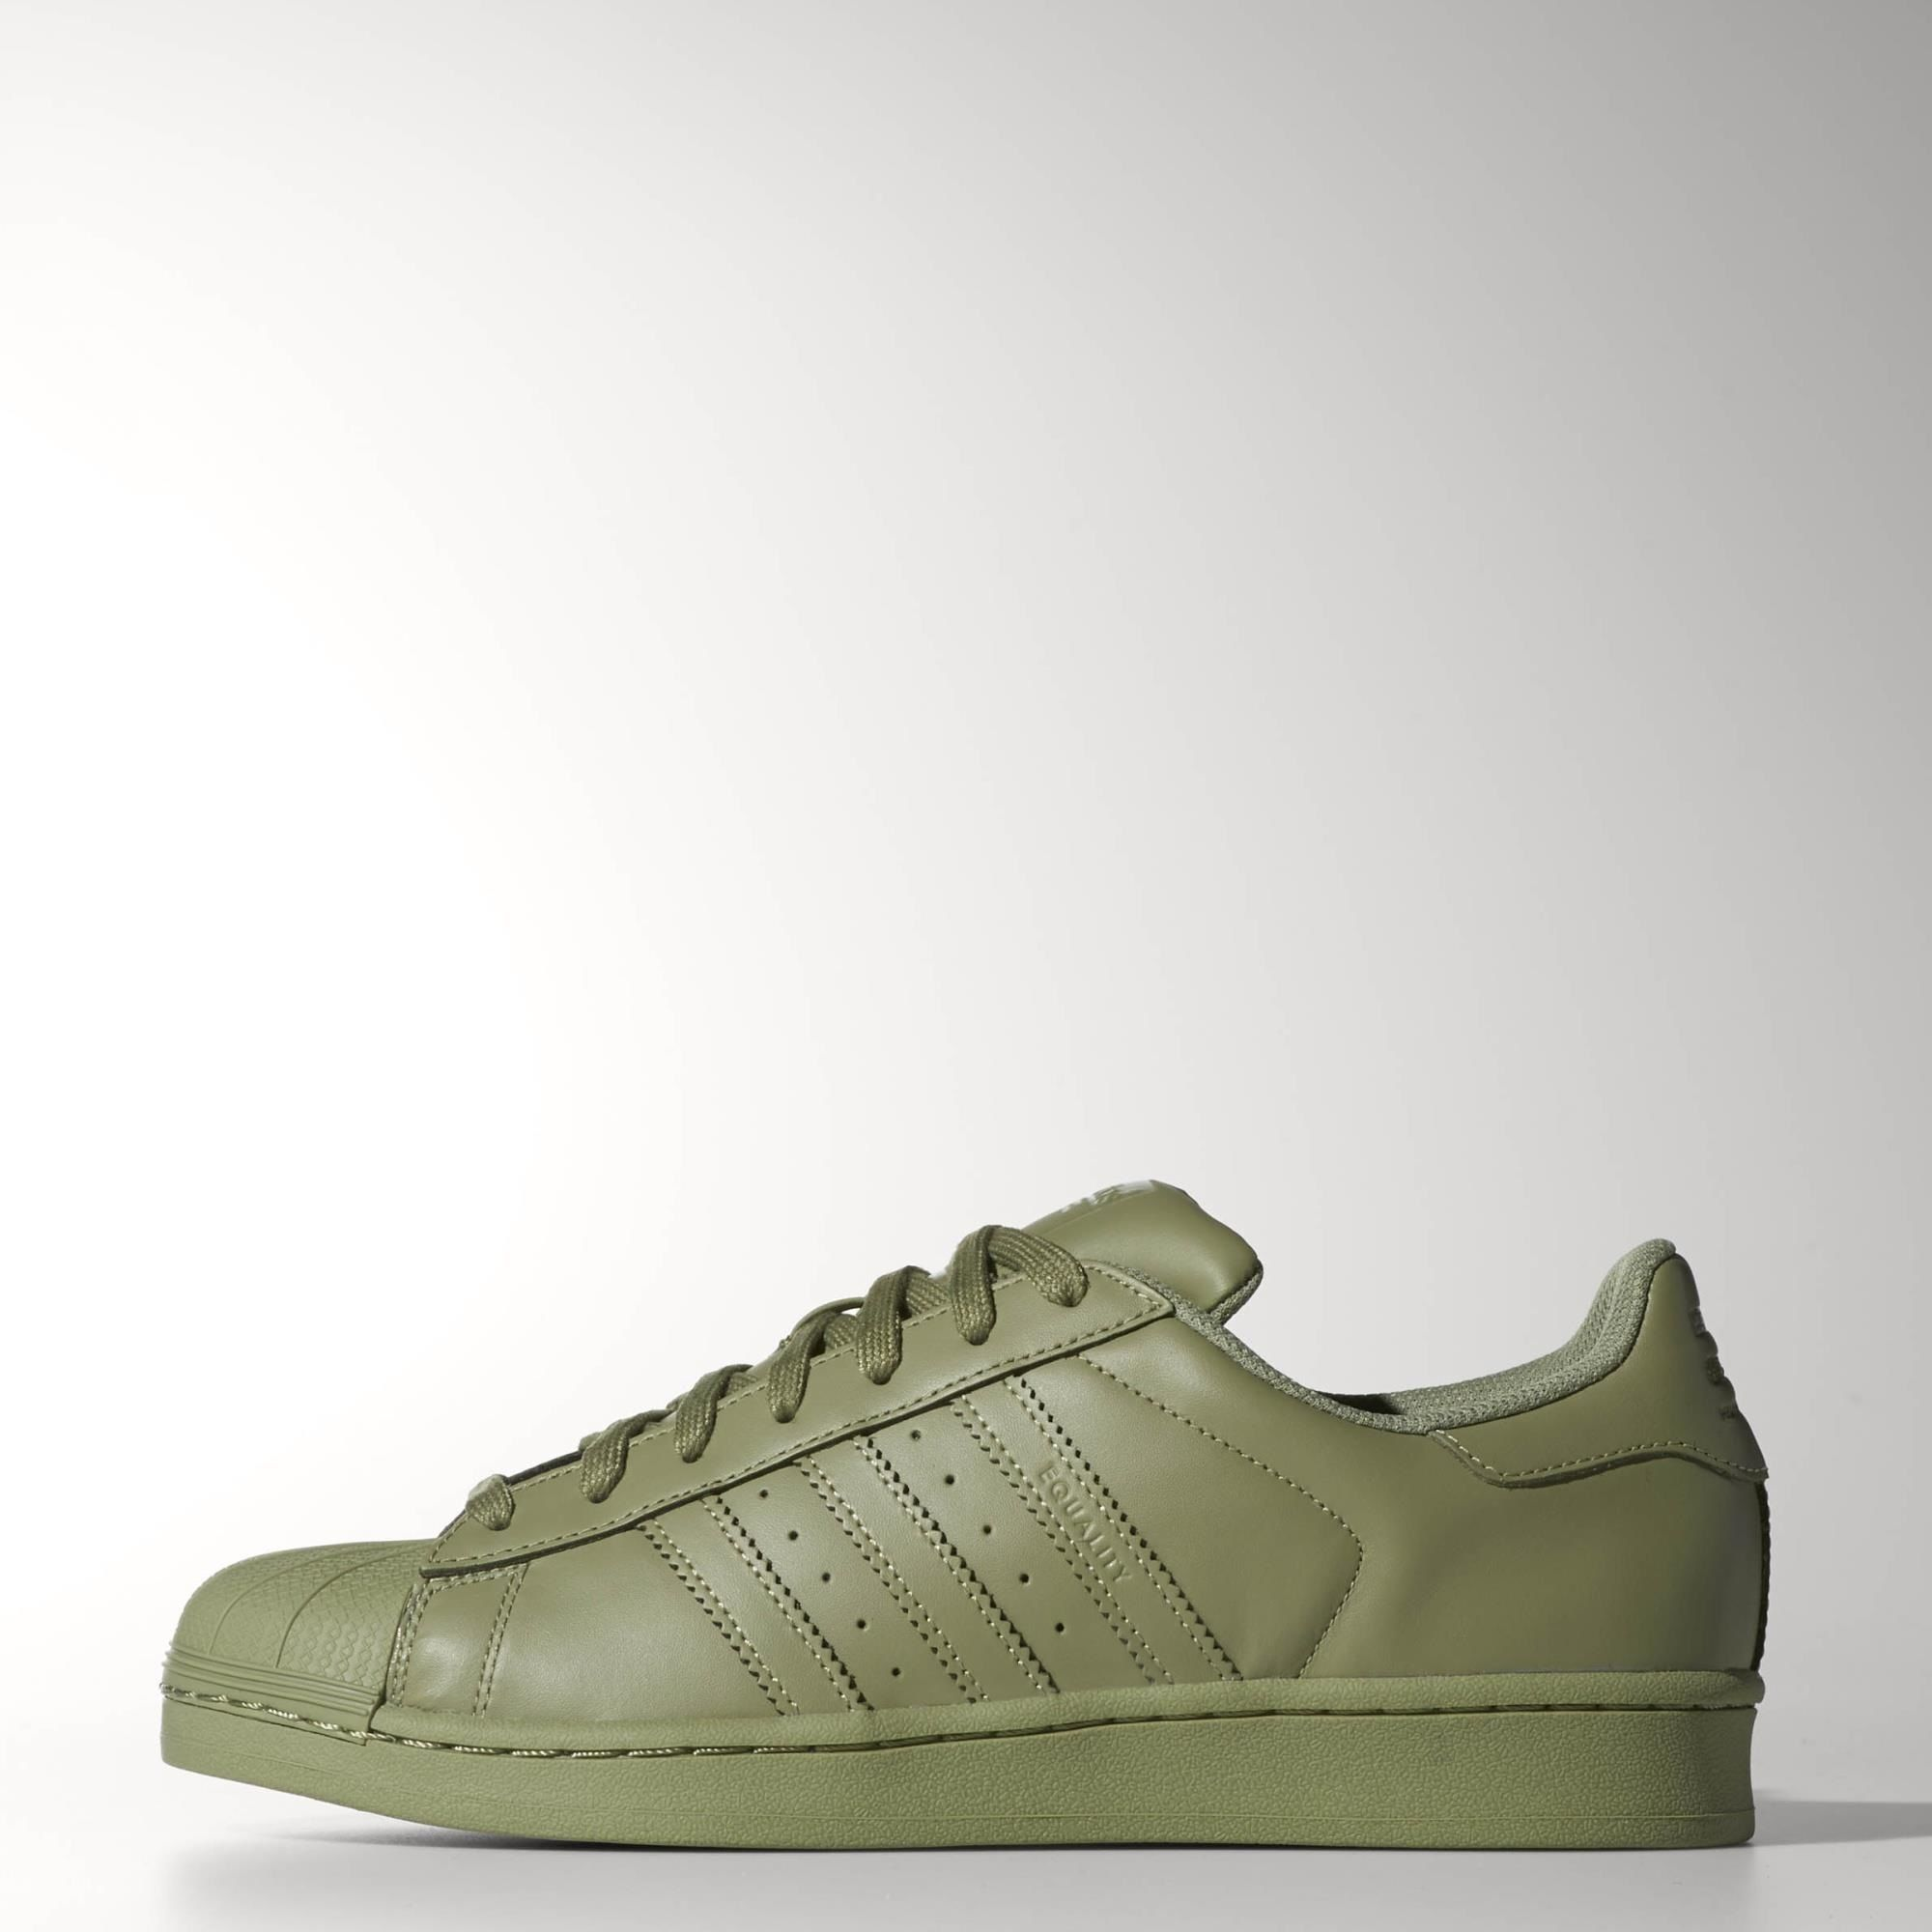 Adidas Supercolor Shift Olive 39